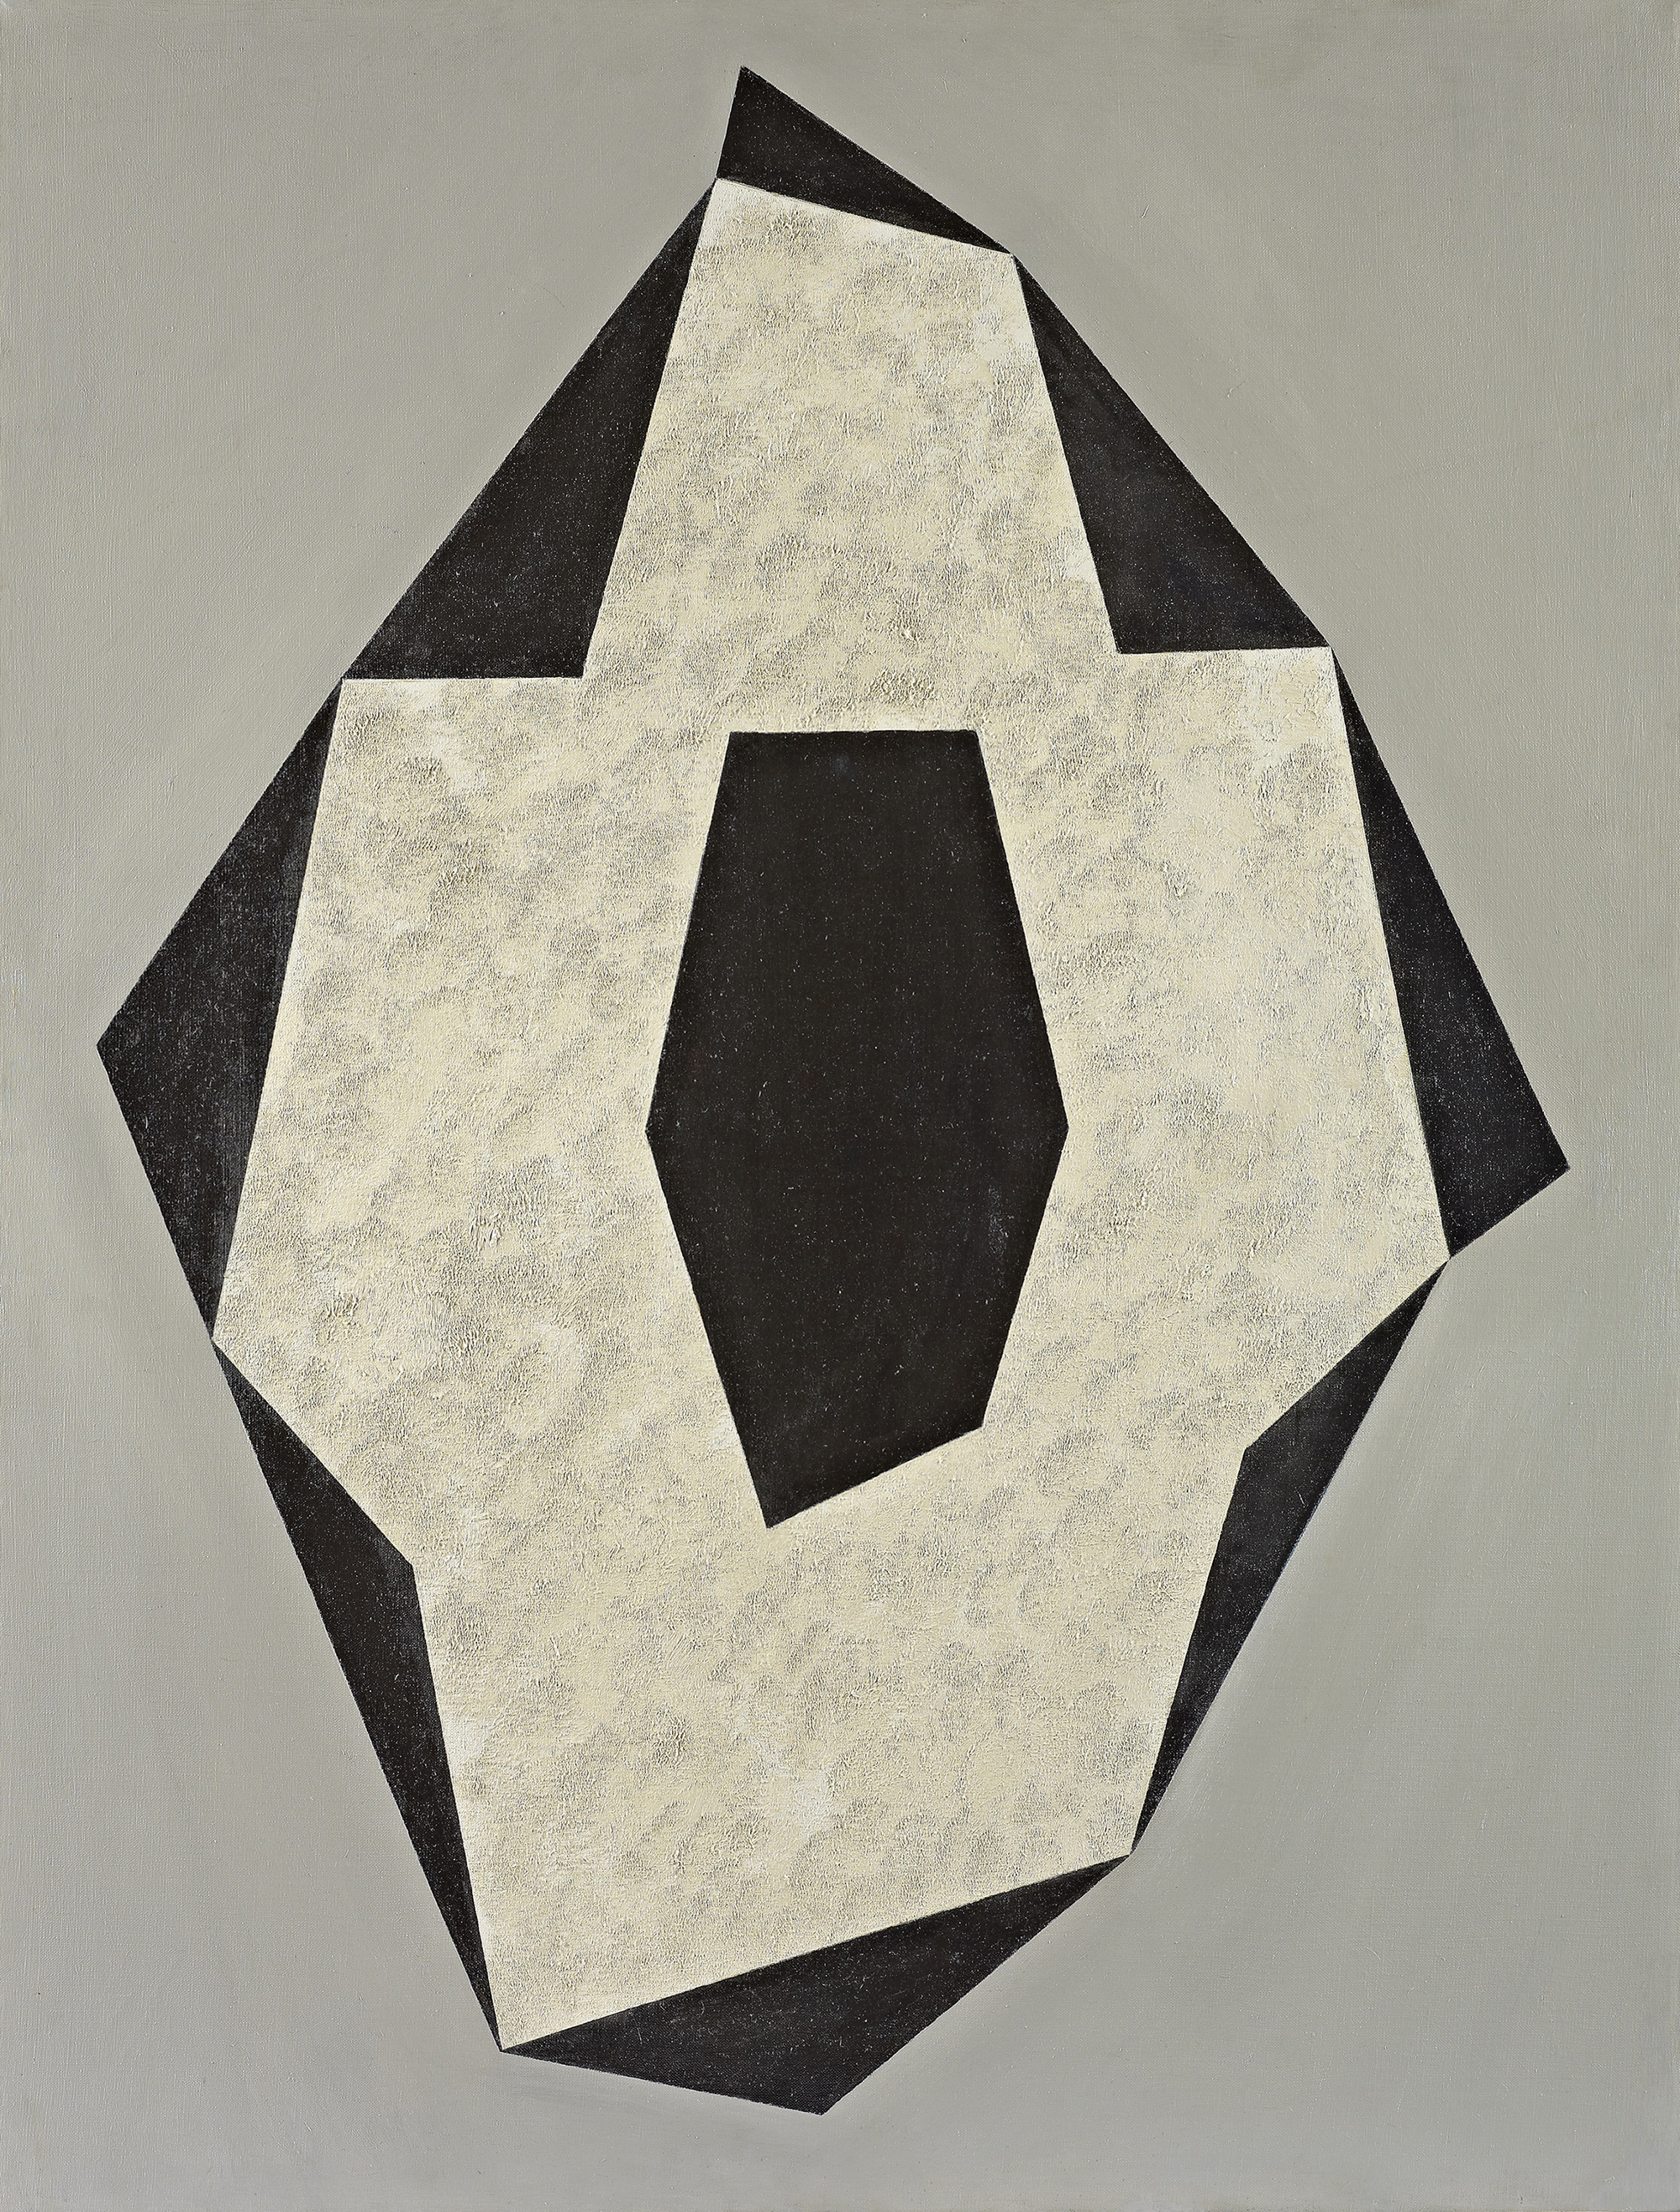 Polygon in Space,  Oil on canvas, 1969, 40 x 30 inches